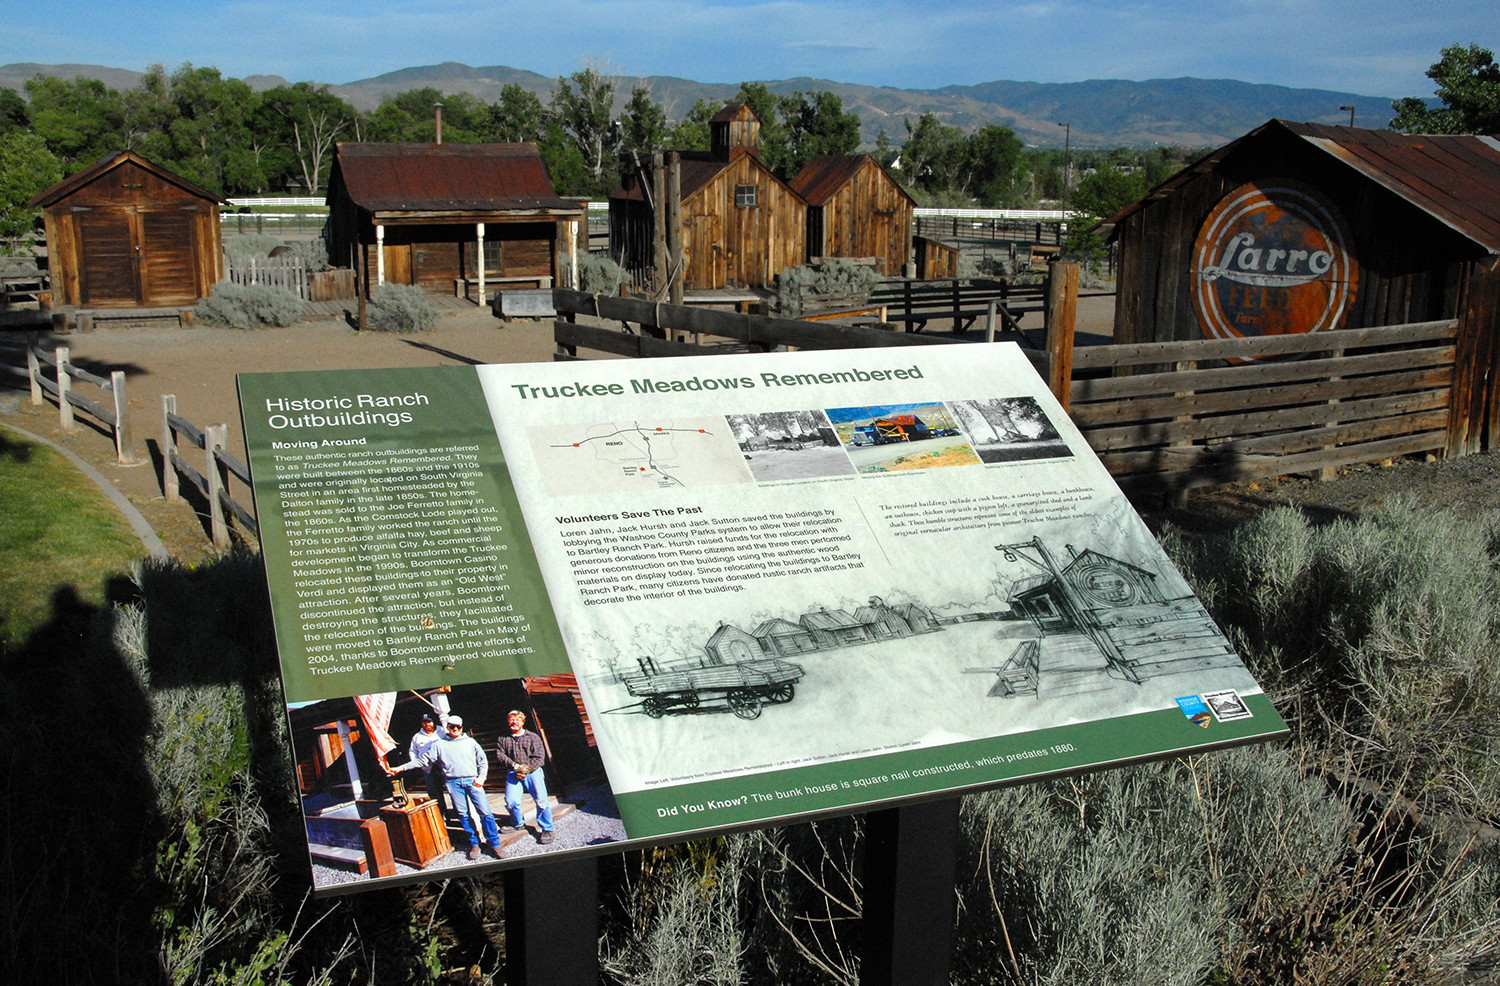 Truckee Meadows Remembered at Bartley Ranch (circa 2017)